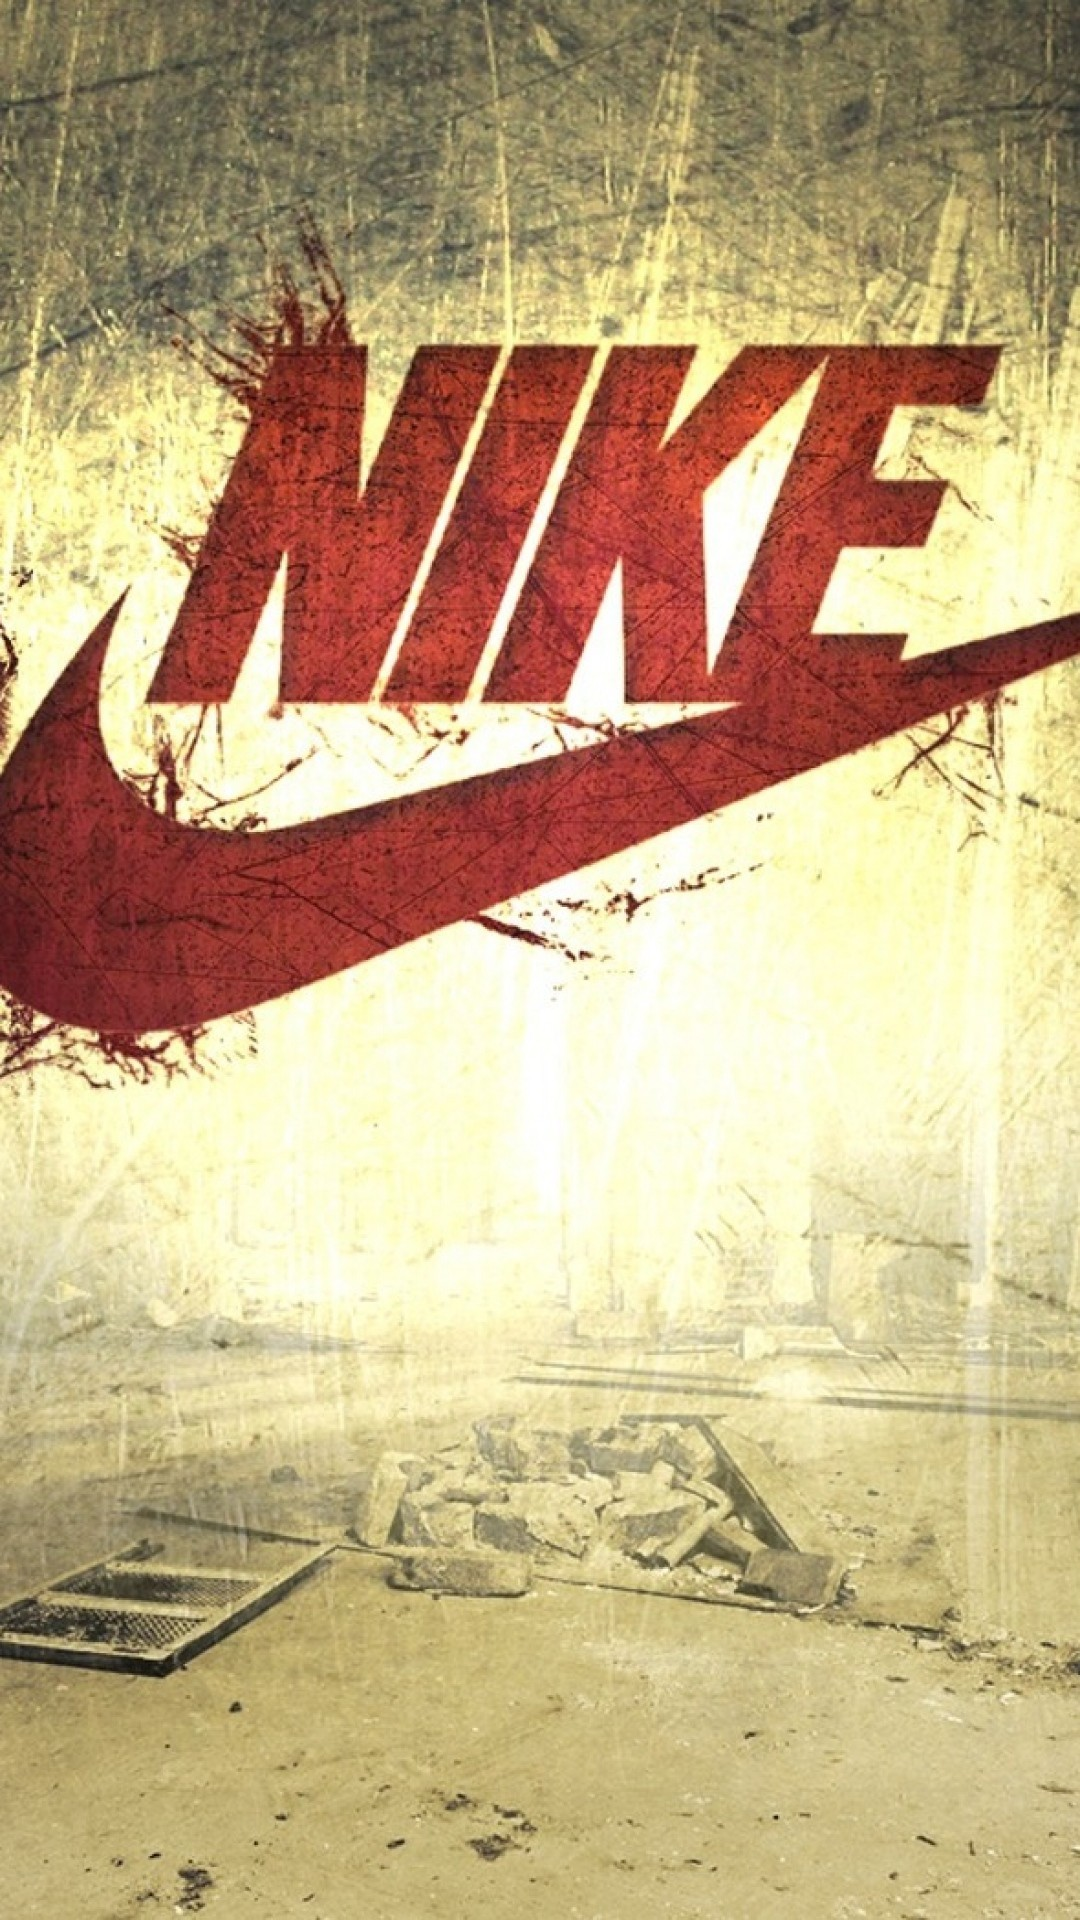 Nike Background for Iphone.